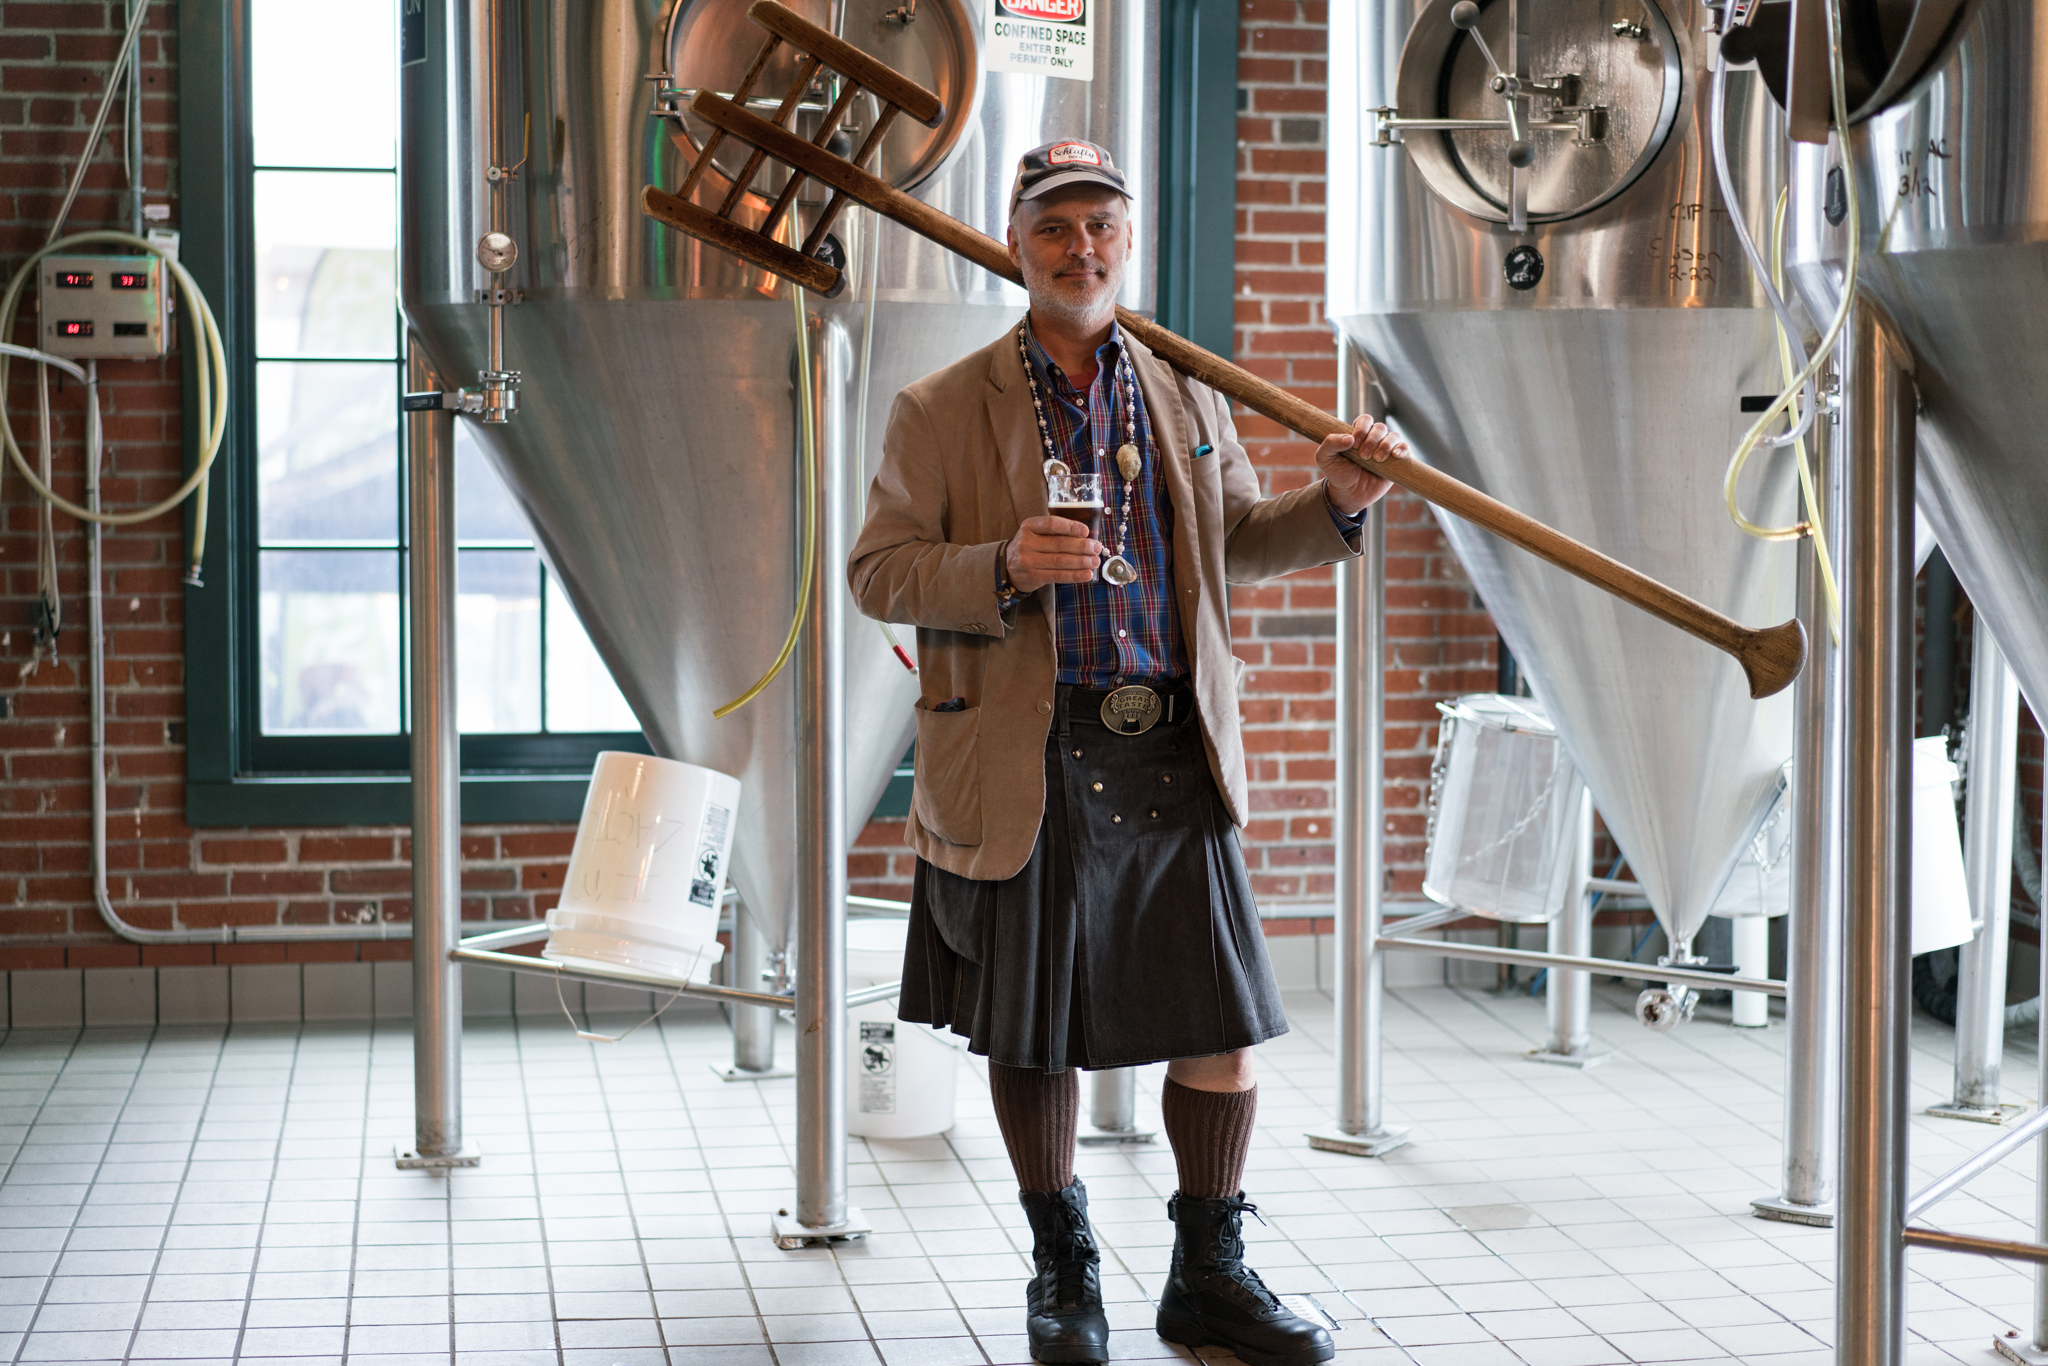 The Story of Schlafly's Colorful Stephen Hale